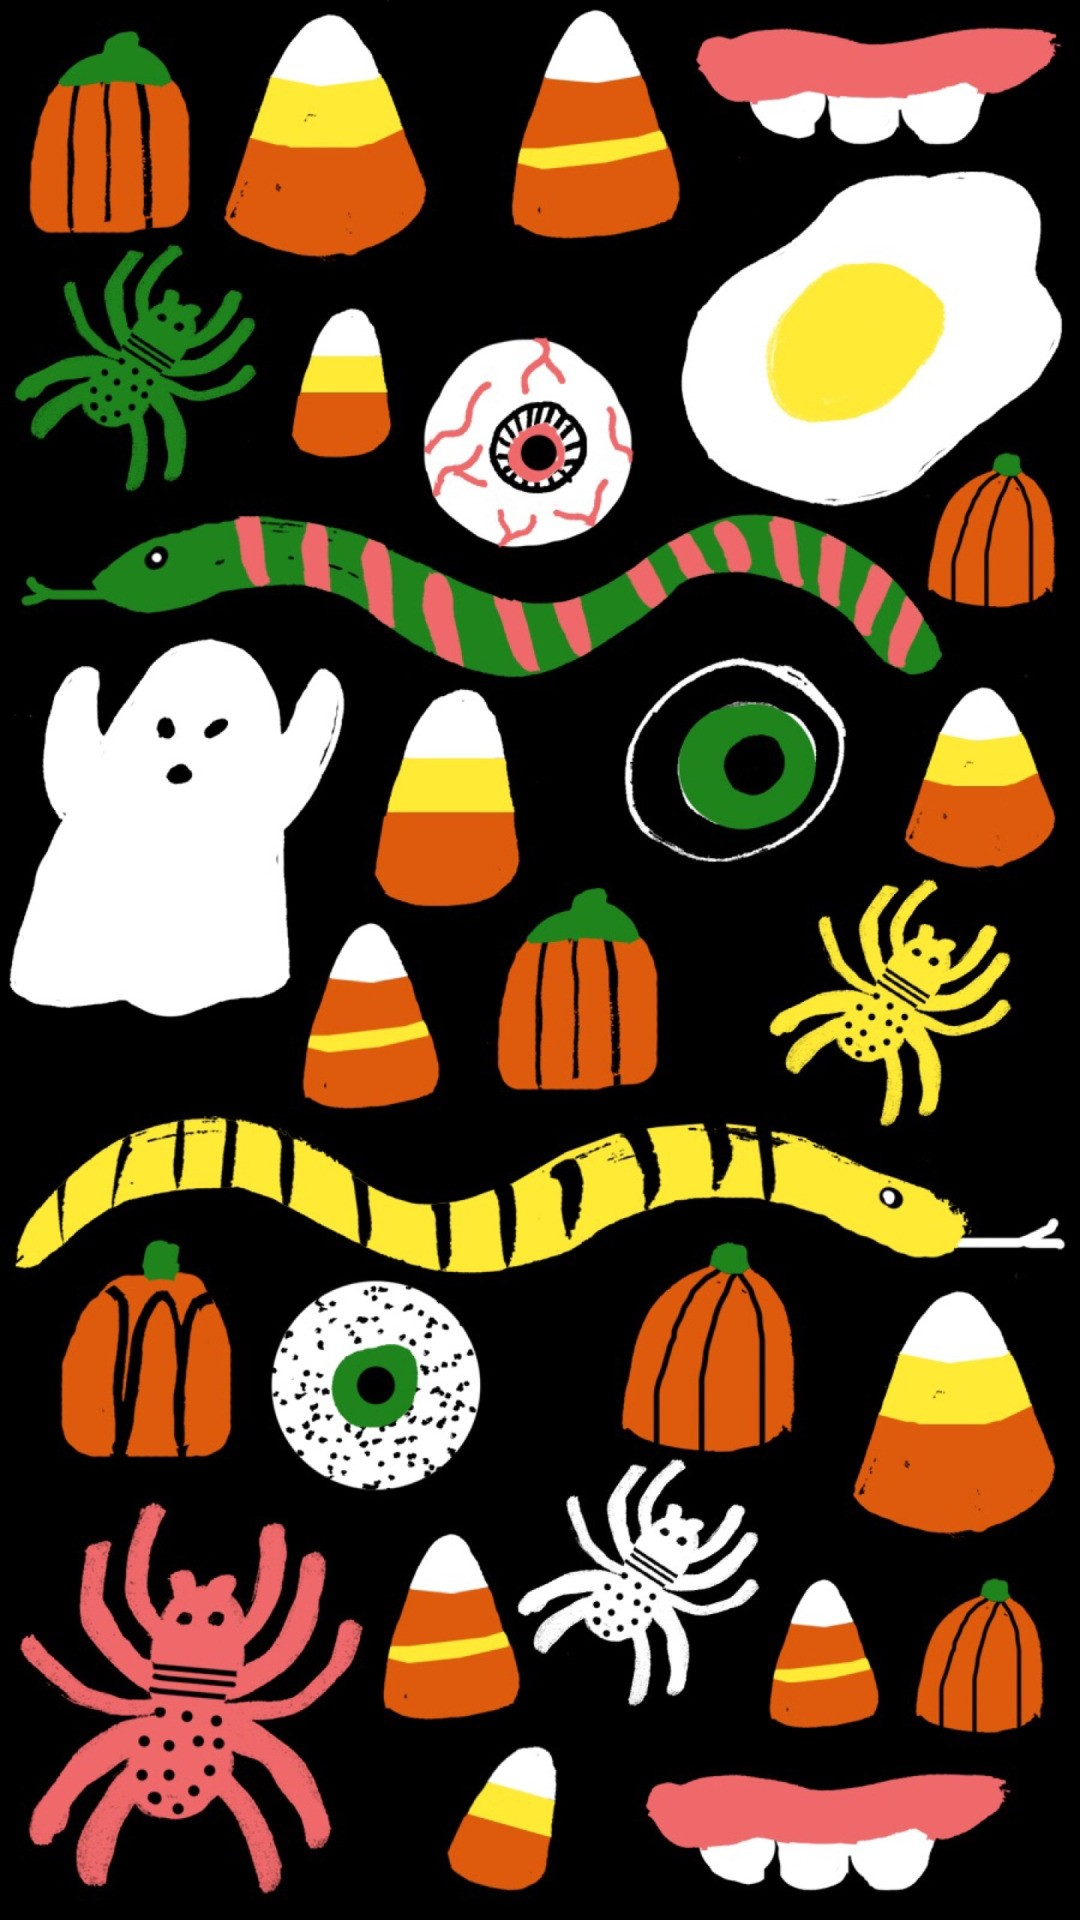 Cute Halloween wallpaper \u00b7\u2460 Download free beautiful HD wallpapers for desktop and mobile devices